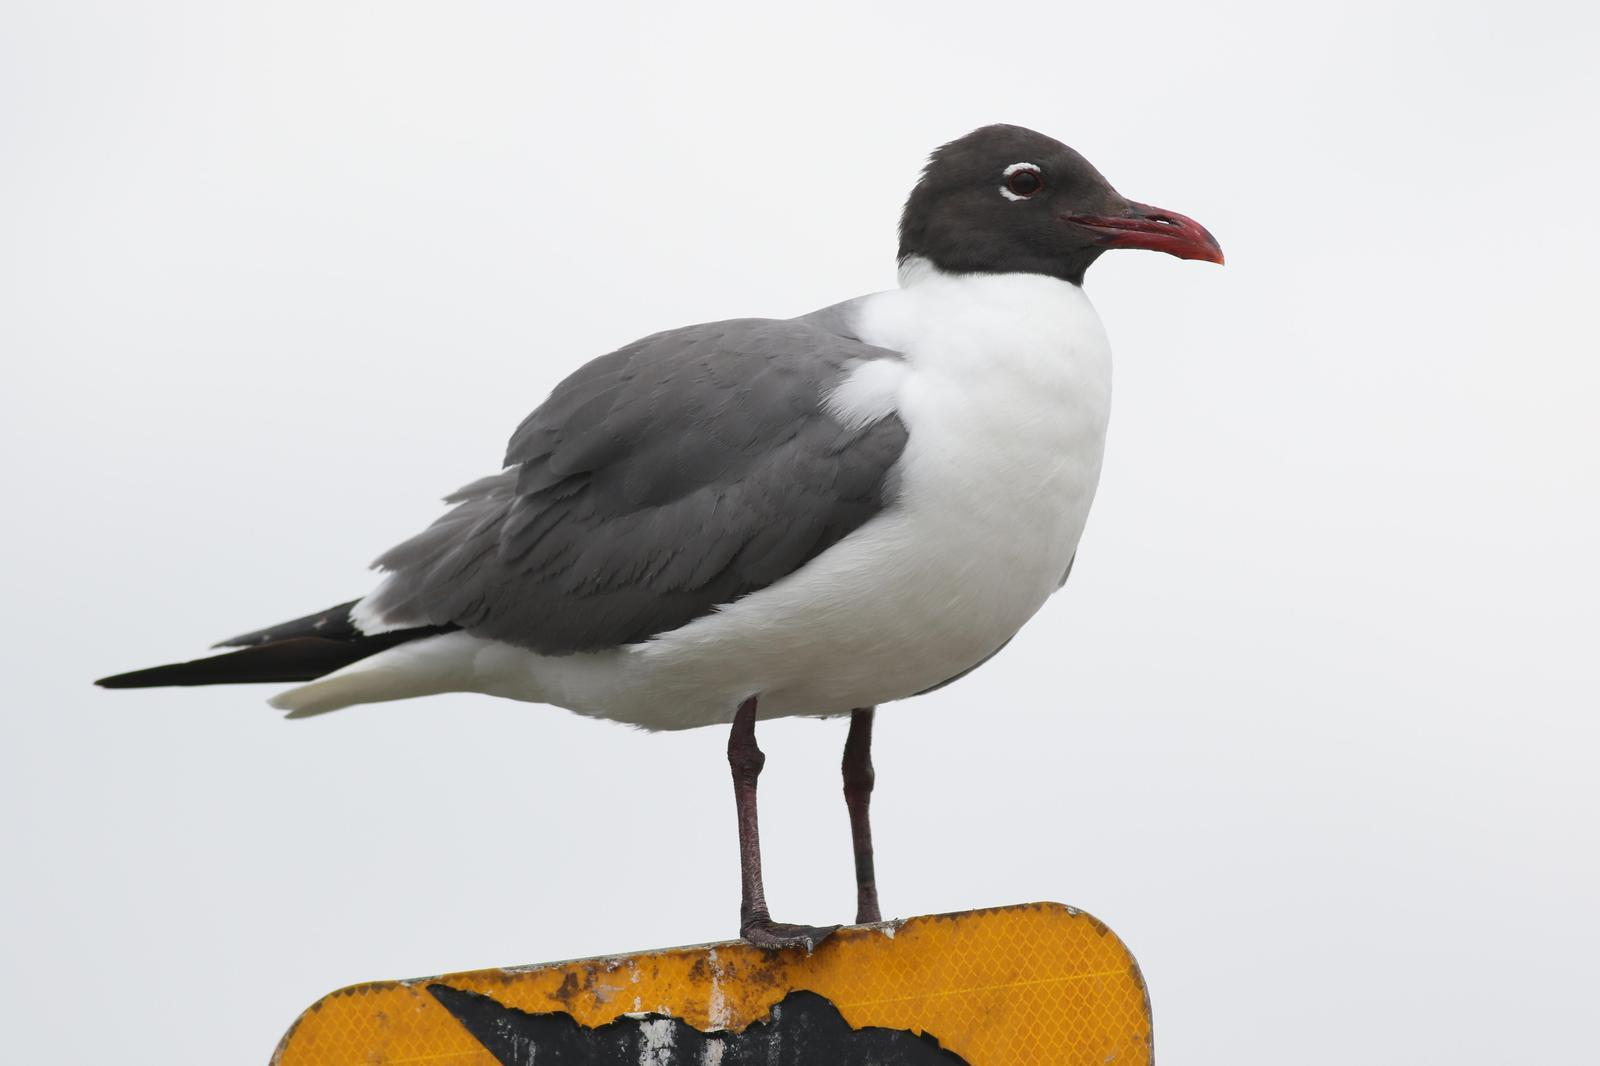 Laughing Gull Photo by Tom Ford-Hutchinson